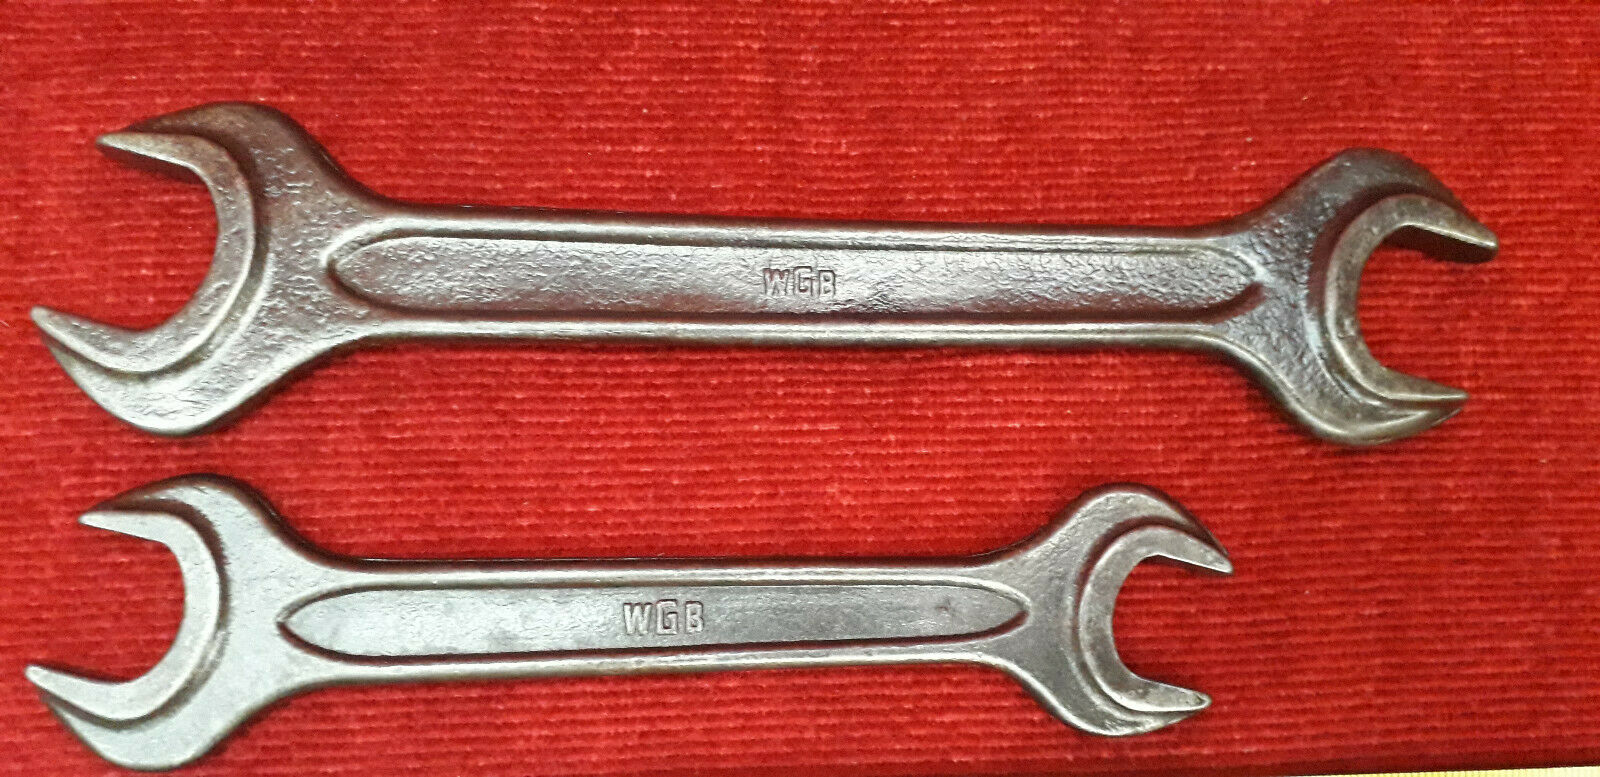 L10) LOT CLE PLATE - OUTIL ANCIEN - WGB,SACCA,Made in URSS - OUTILLAGE - GARAGE